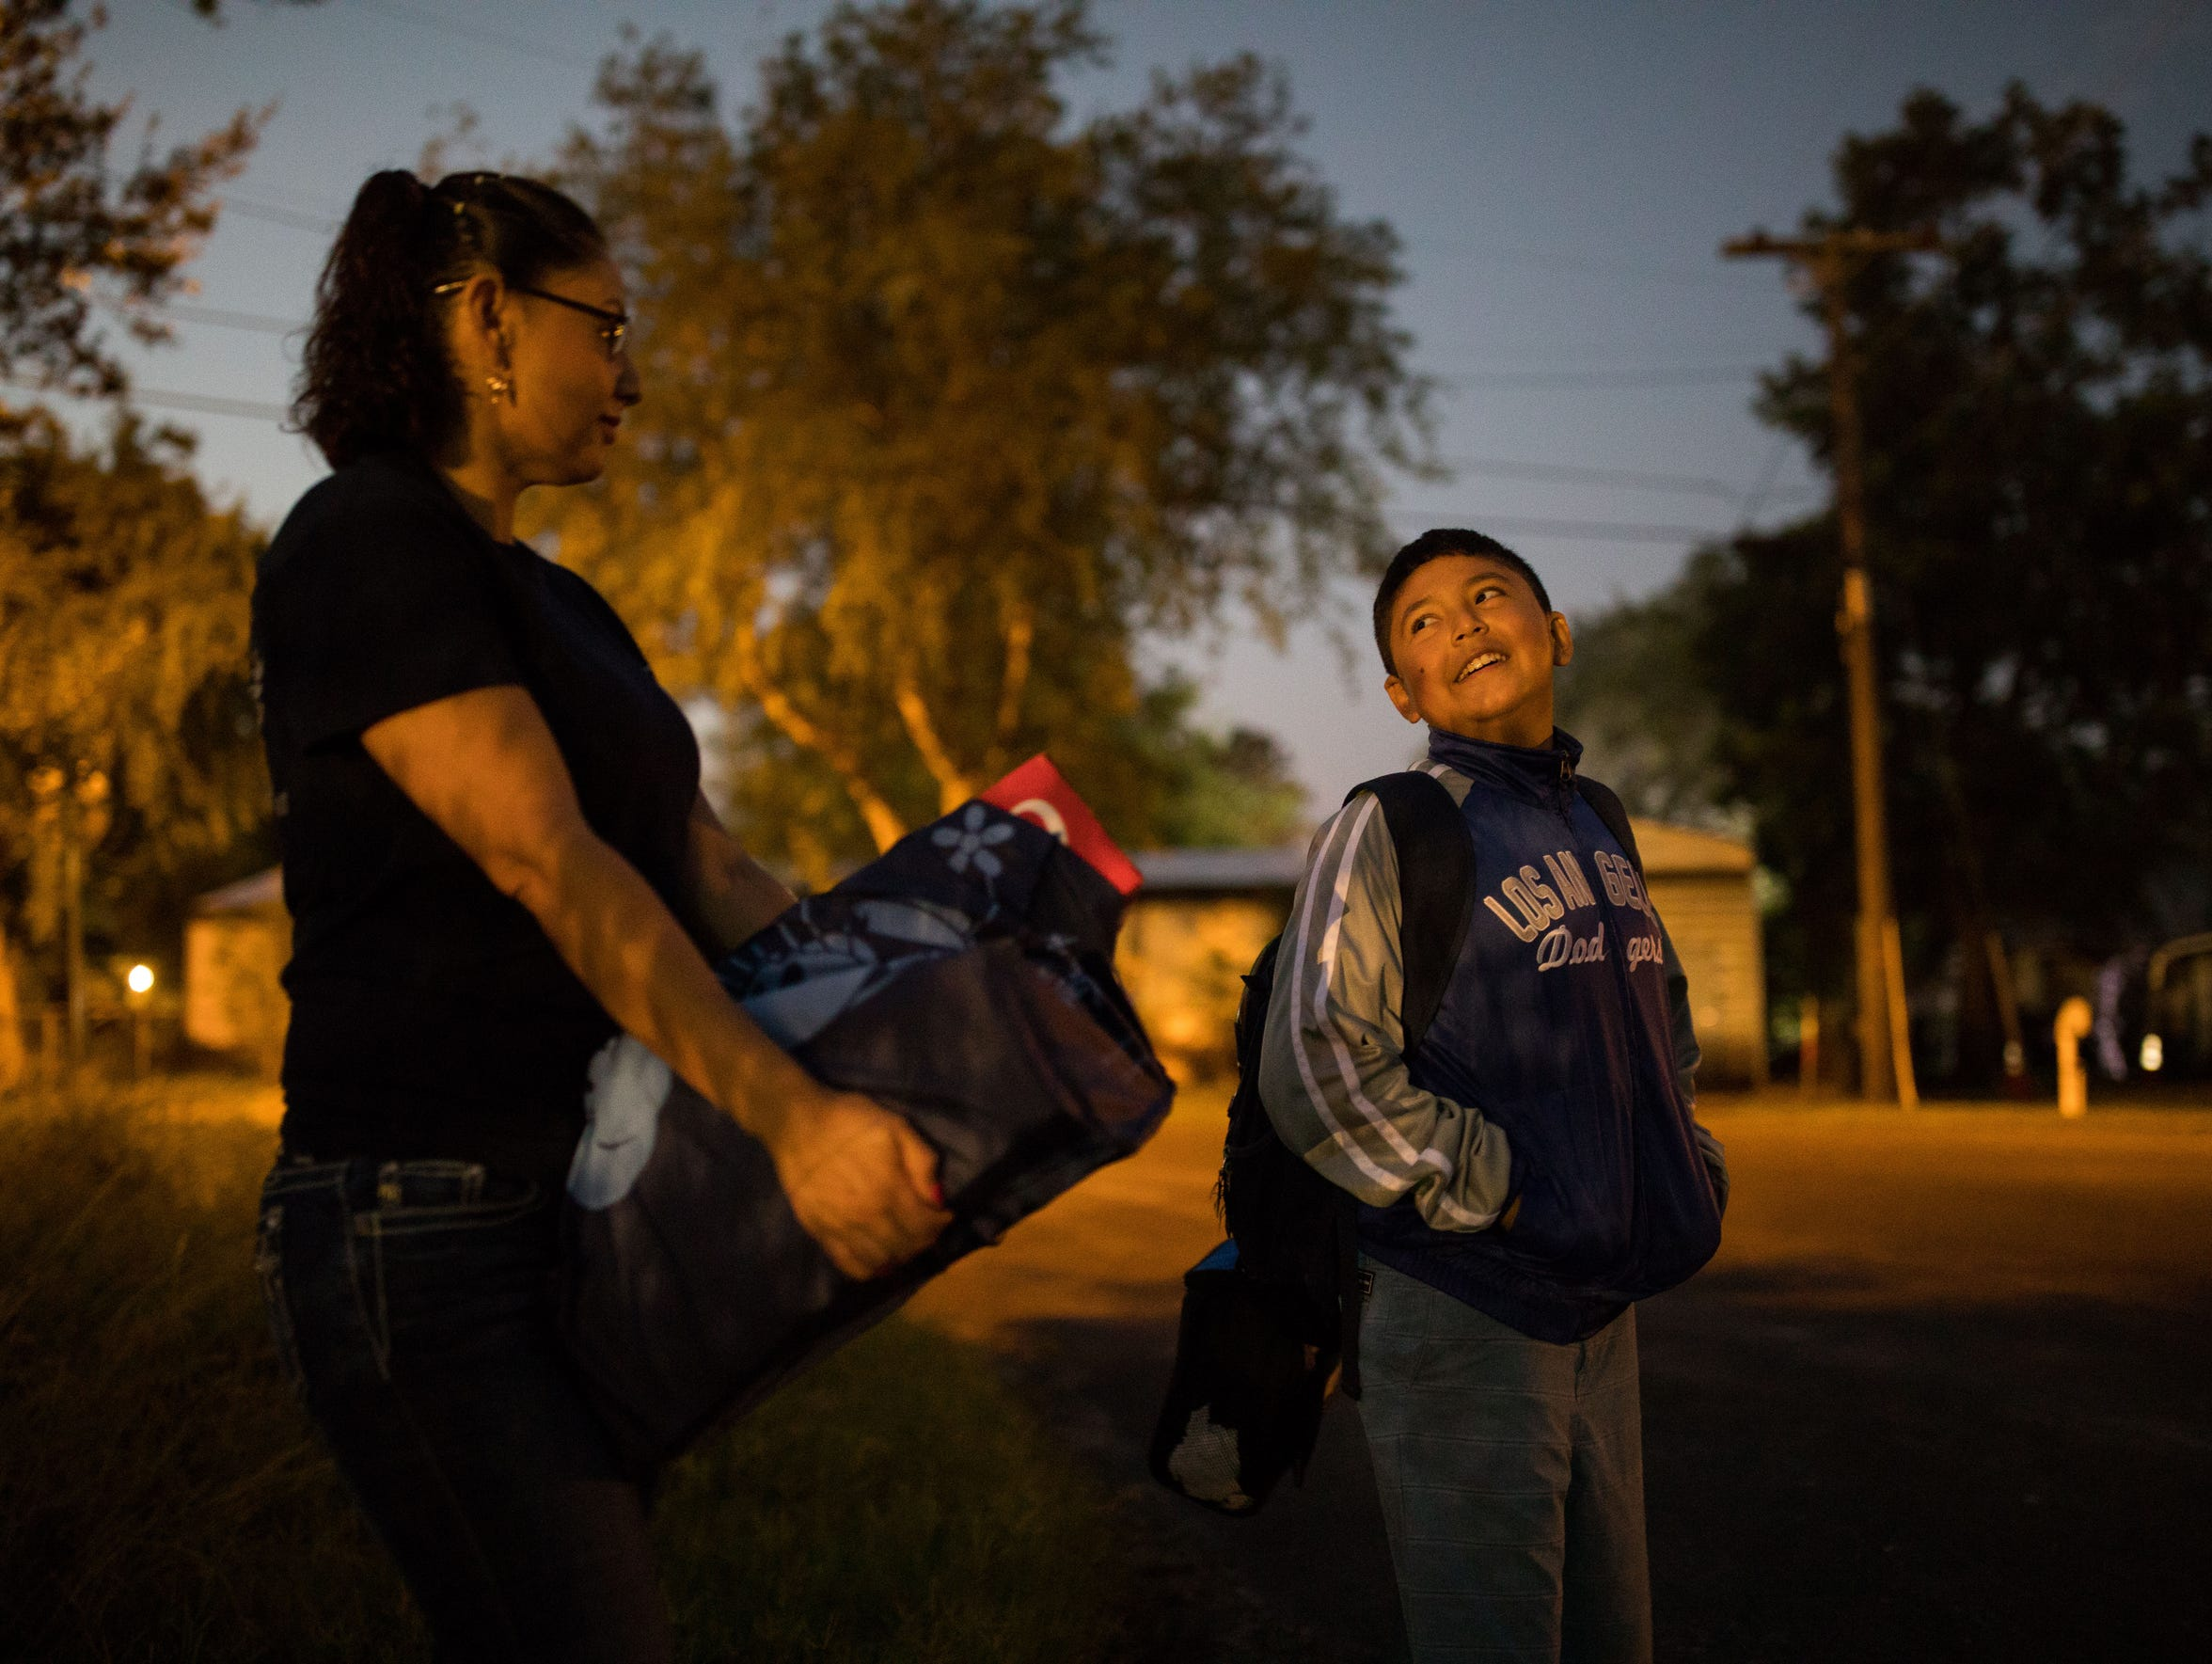 Monica Rocha Alcarez holds sodas for her 10-year-old son Hector Palacios class as they wait at his bus stop on Sept. 29, 2017. Rocha Alcarez, who was brought over from Mexico at the age of four, is a DACA recipient. She's since graduated with a business degree and owns her own business.